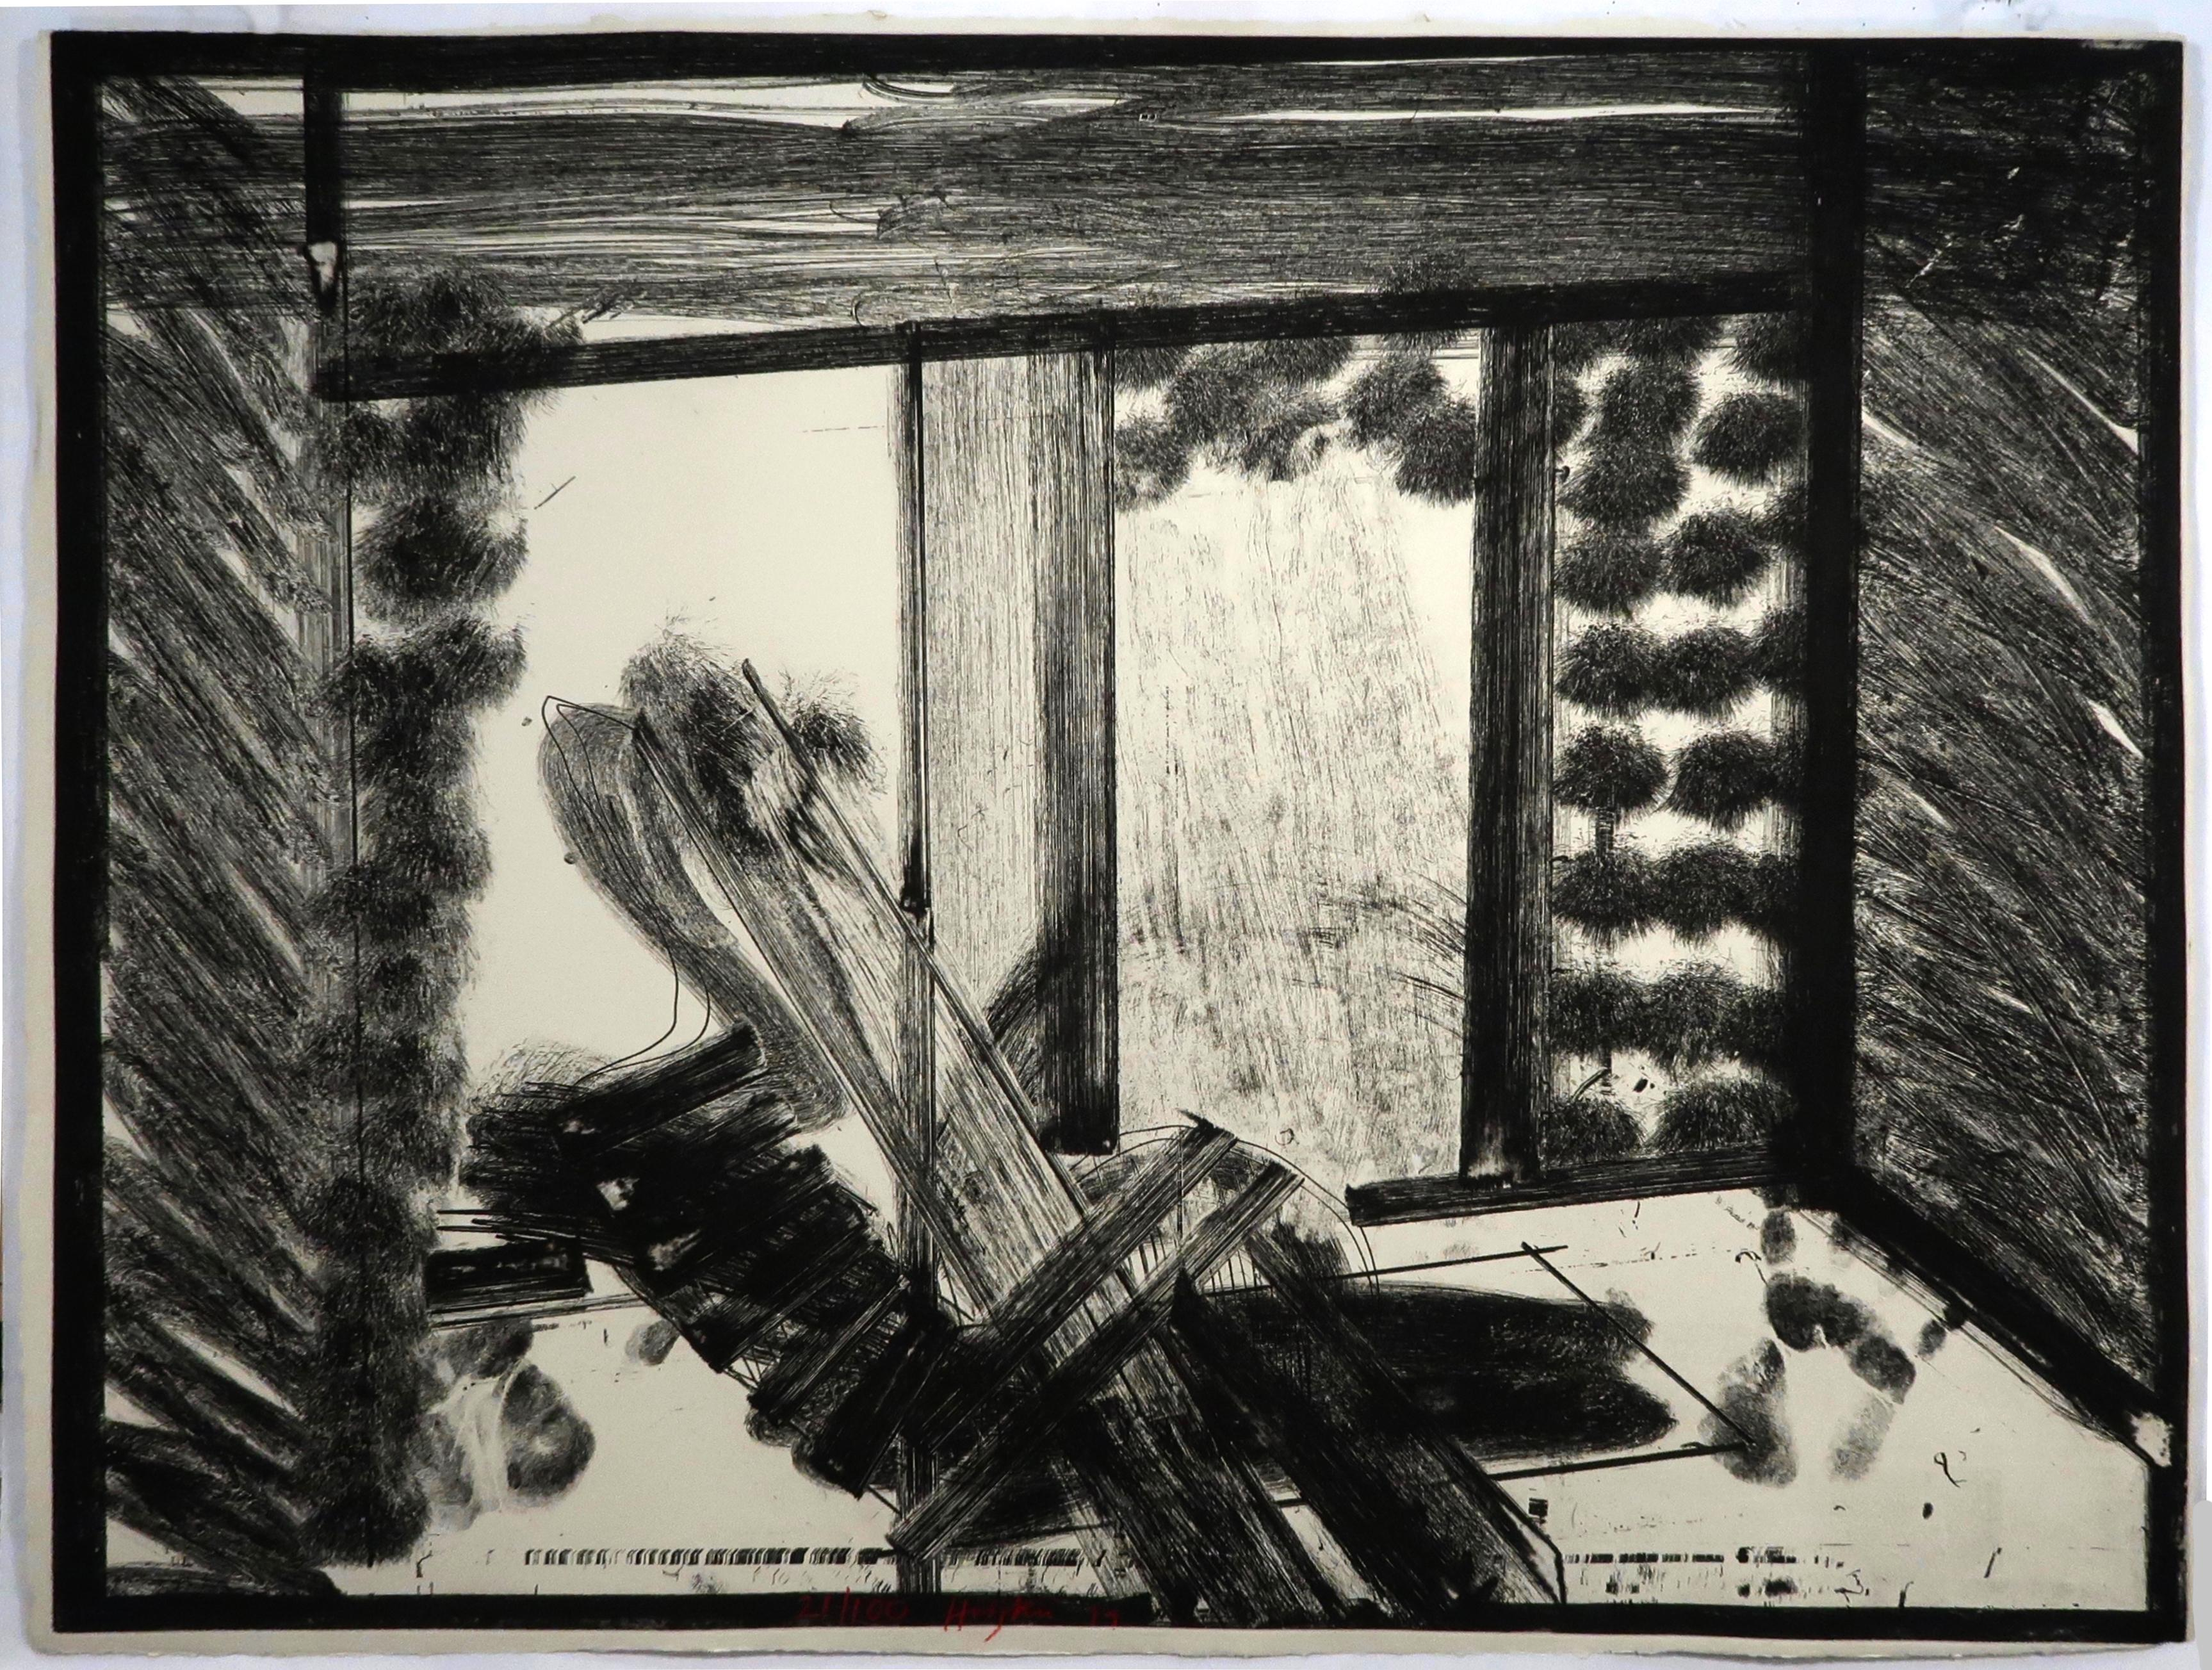 Thinking Aloud in the Museum of Modern Art, Hodgkin, abstract black and white